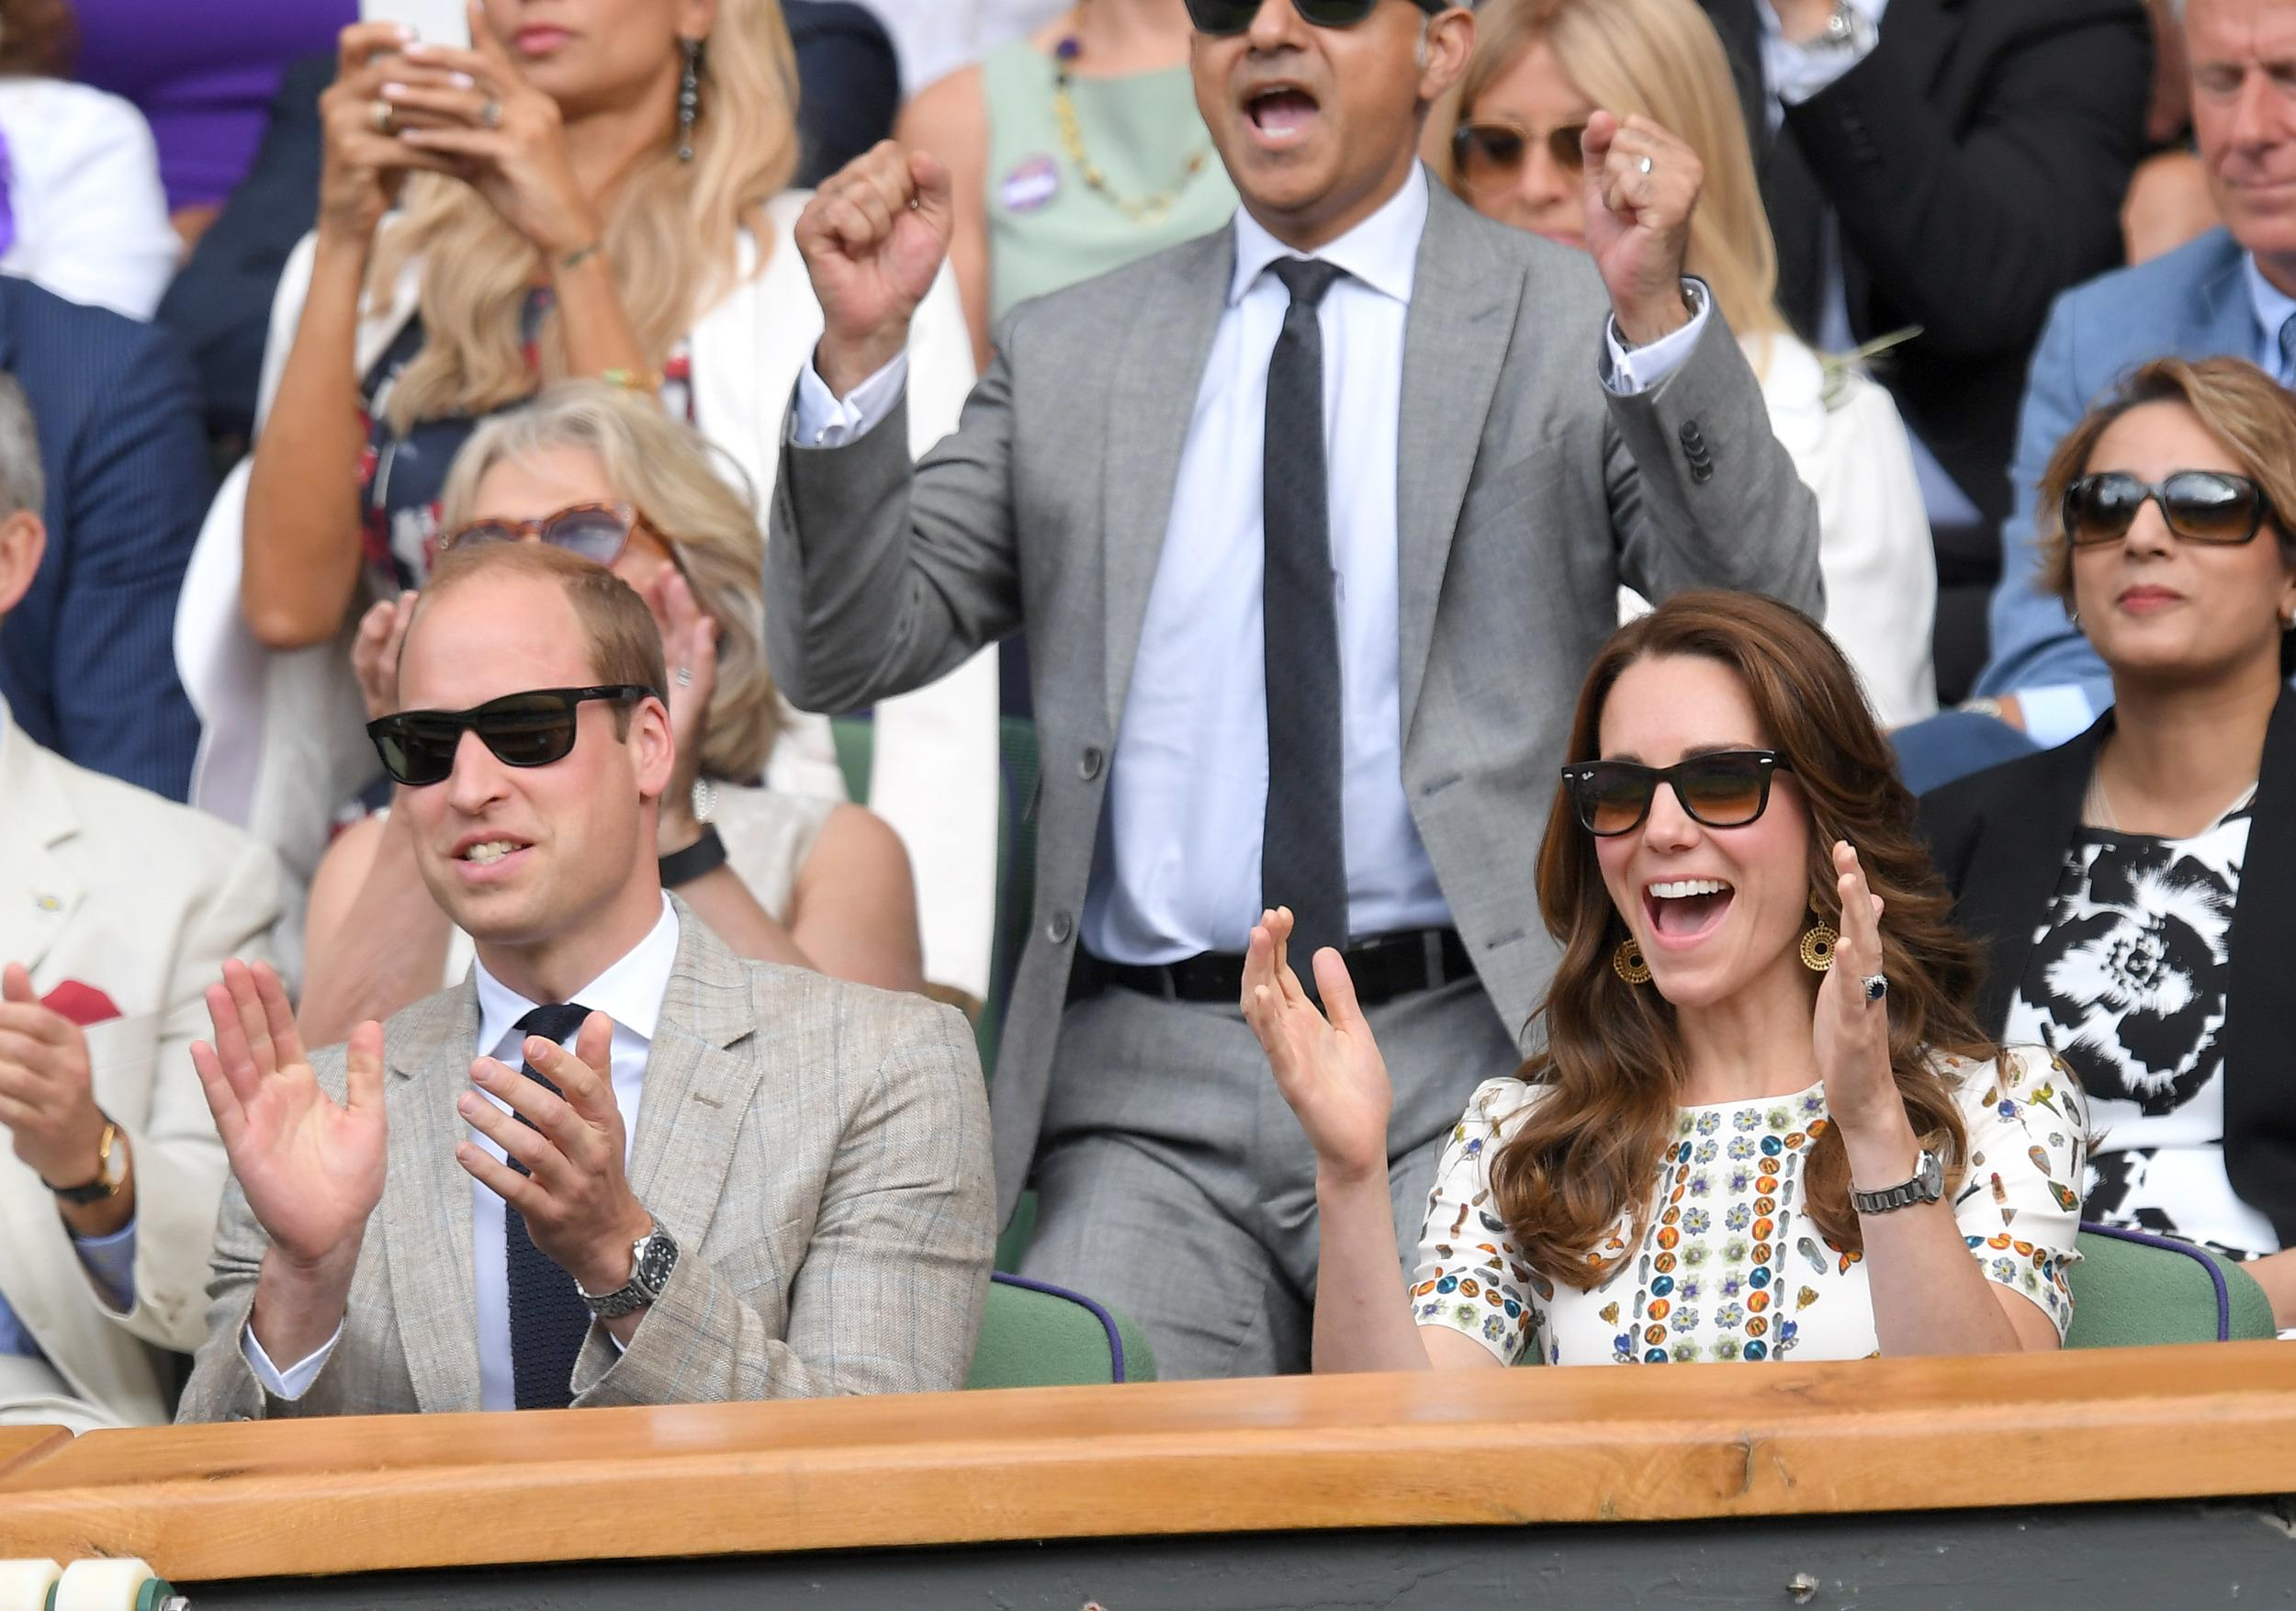 Duke and Duchess applaud triumph.